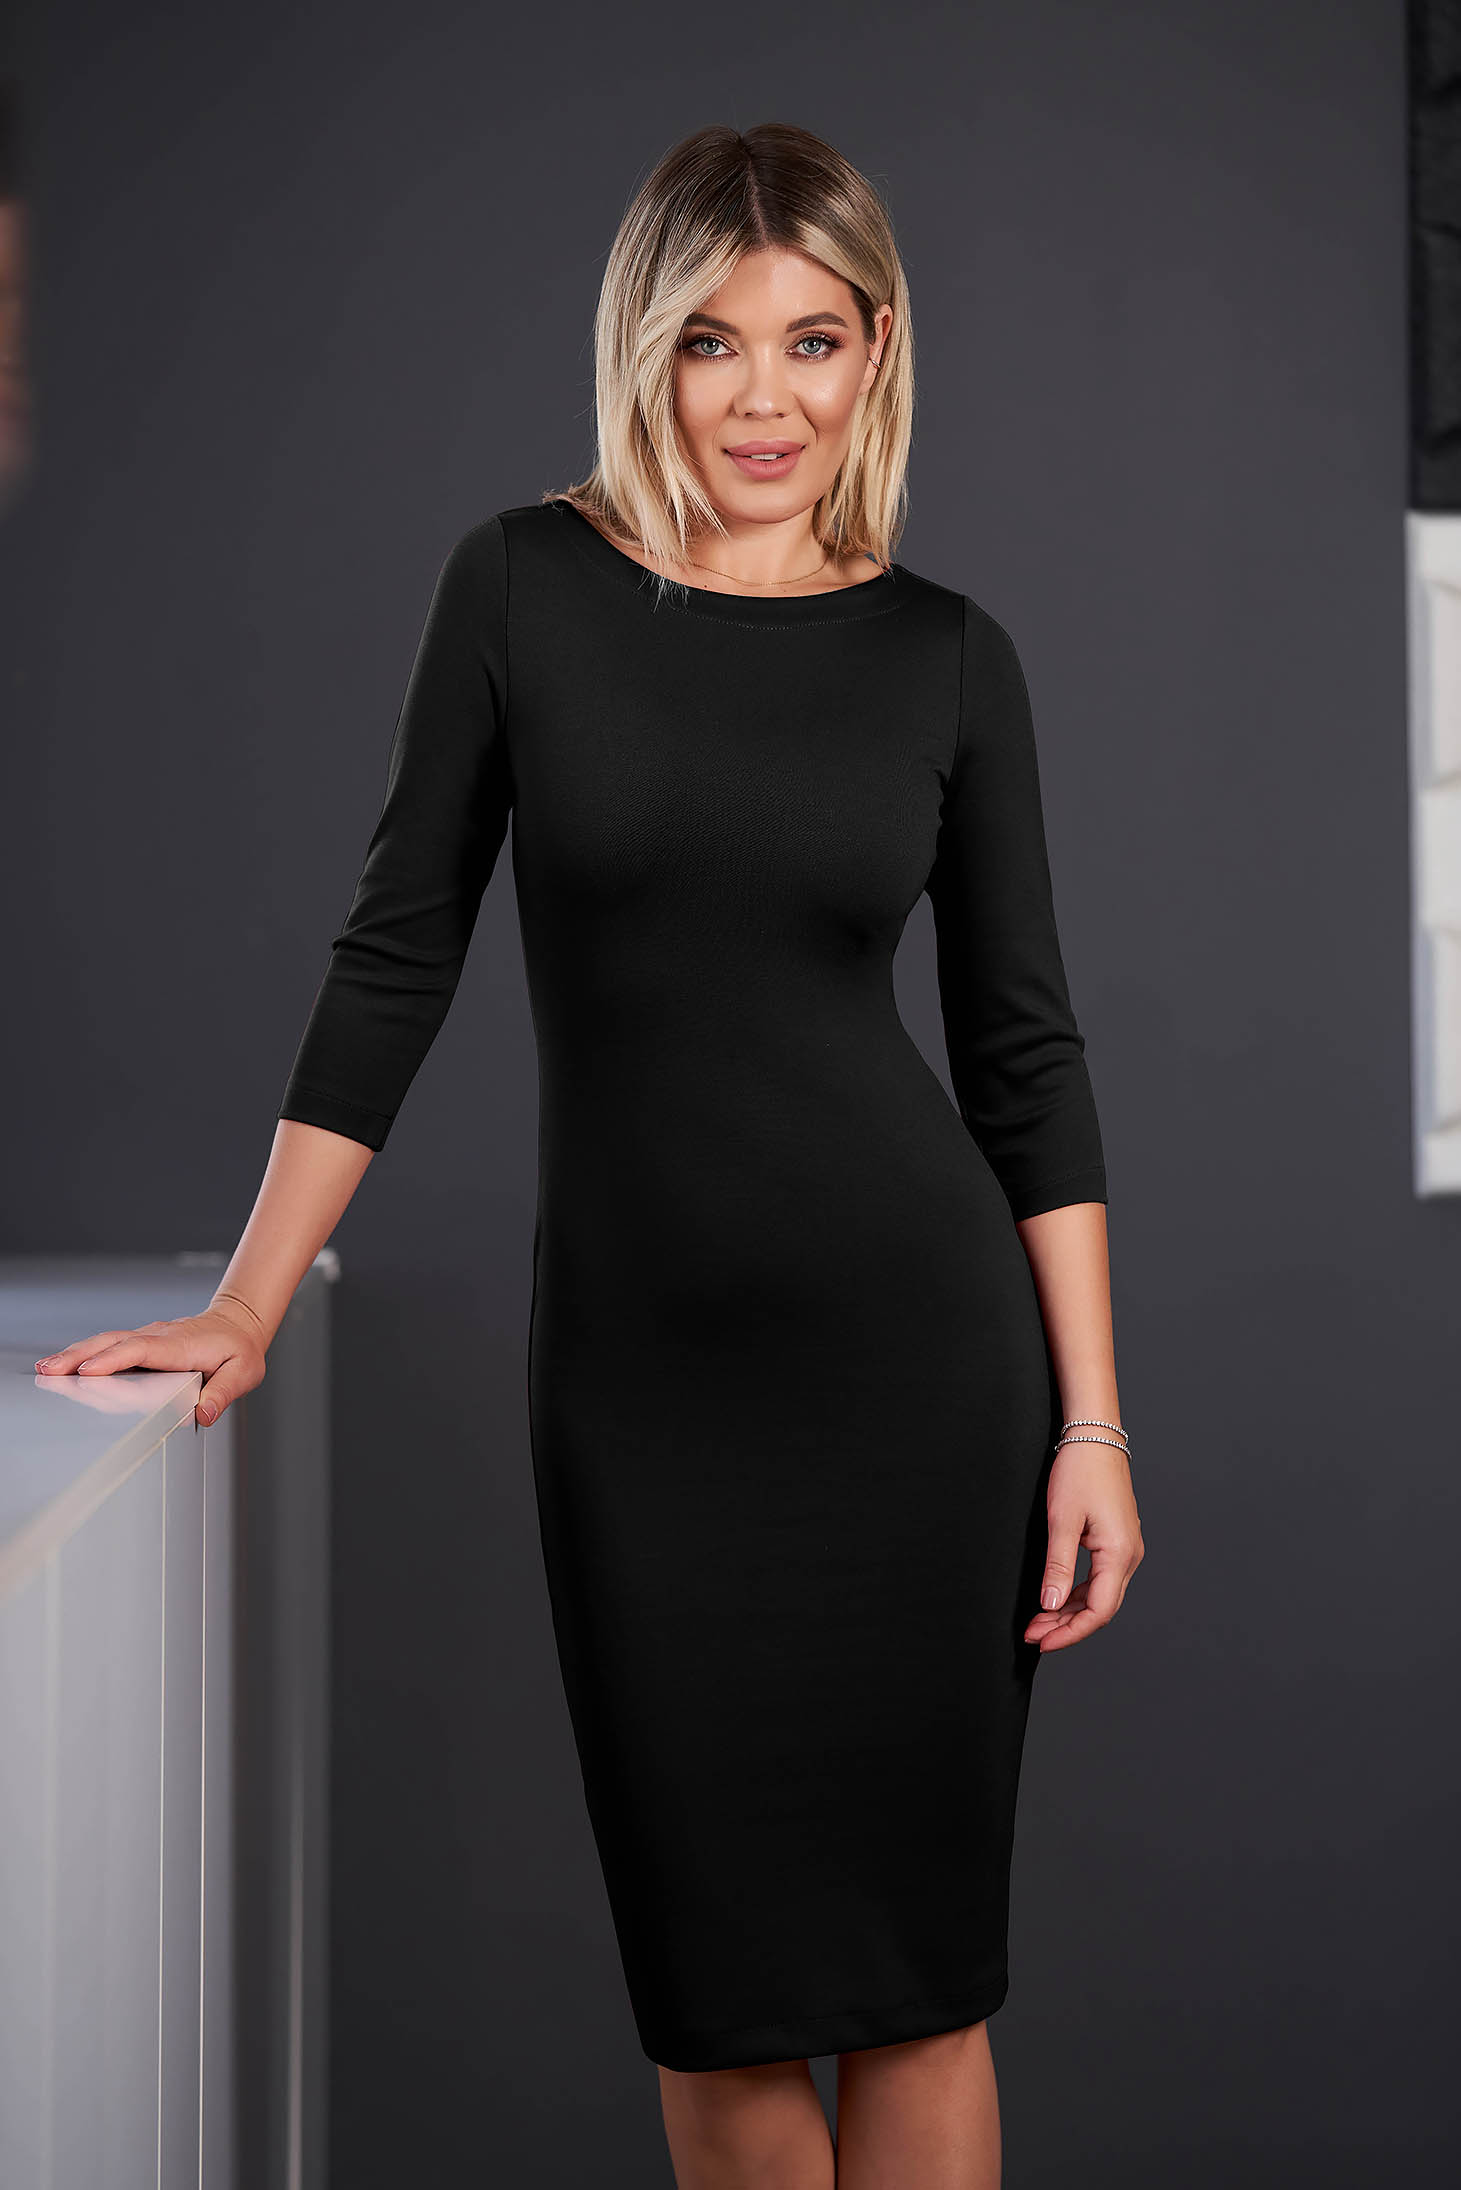 StarShinerS black dress office midi pencil from elastic fabric with 3/4 sleeves